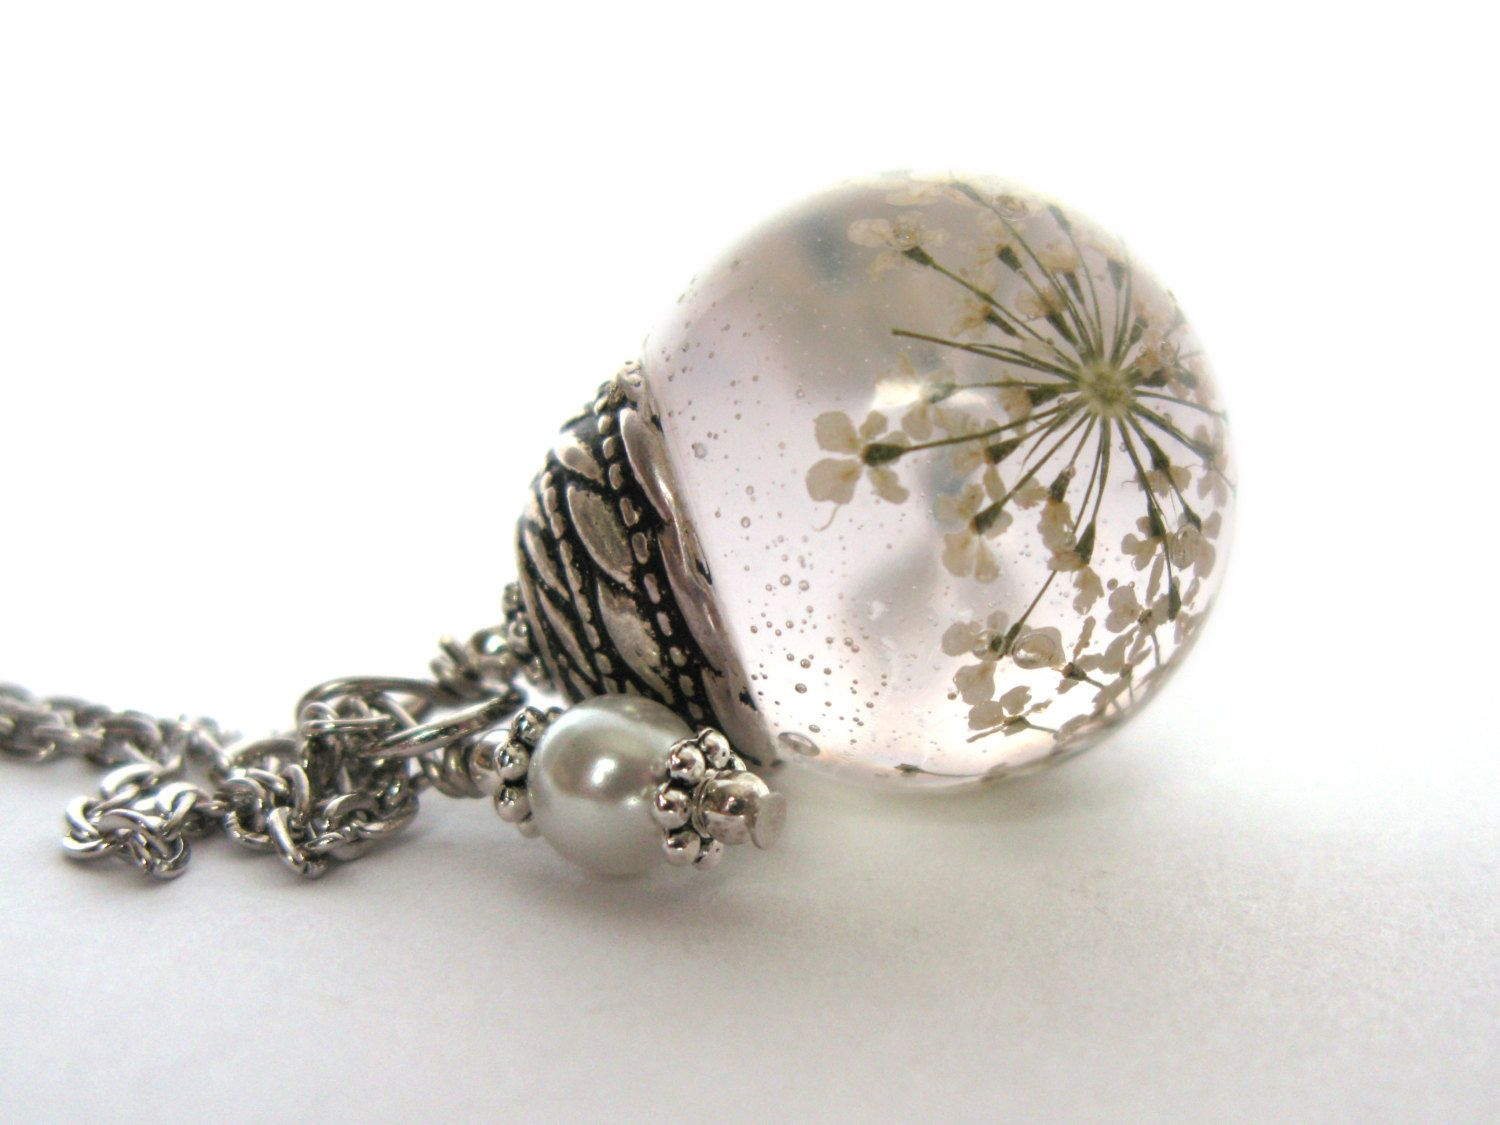 Beautiful queen annes lace resin pendant necklace sphere flowers beautiful queen annes lace resin pendant necklace sphere flowers encased in resin orb 1500 mozeypictures Image collections